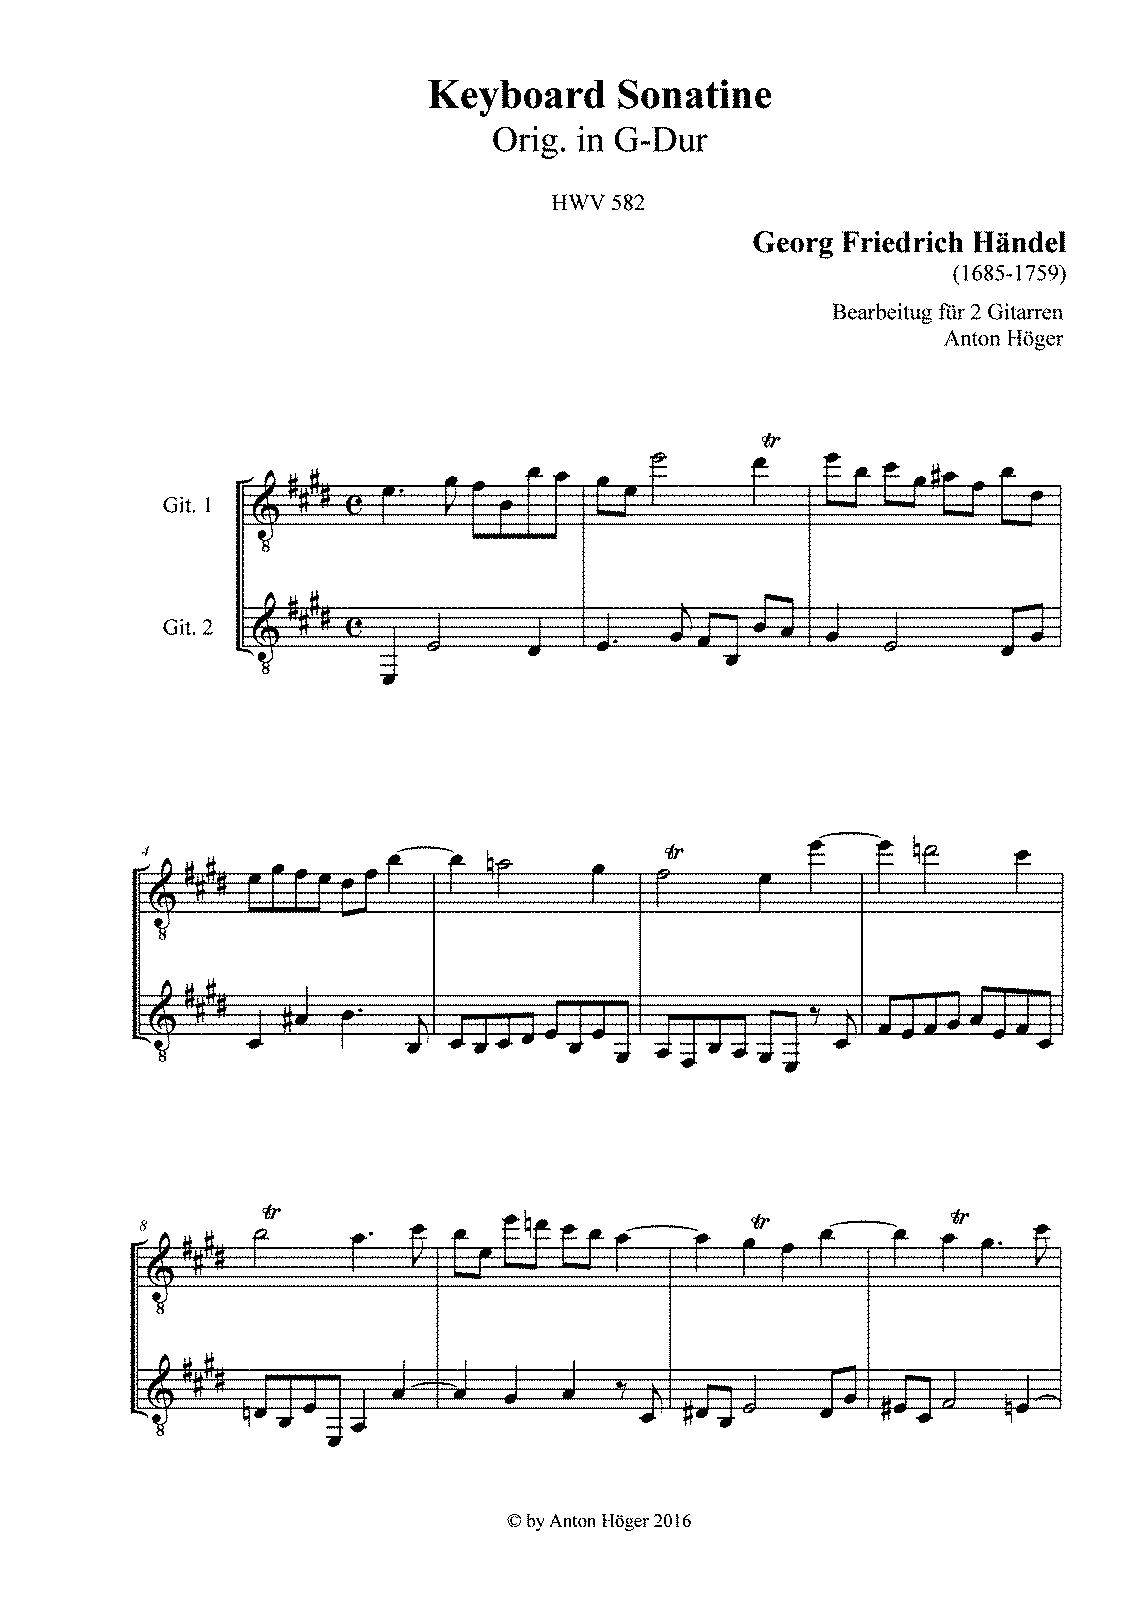 PMLP481318-Händel, Georg Friedrich - Keyboard Sonatina in G major, HWV 582-2Git.pdf